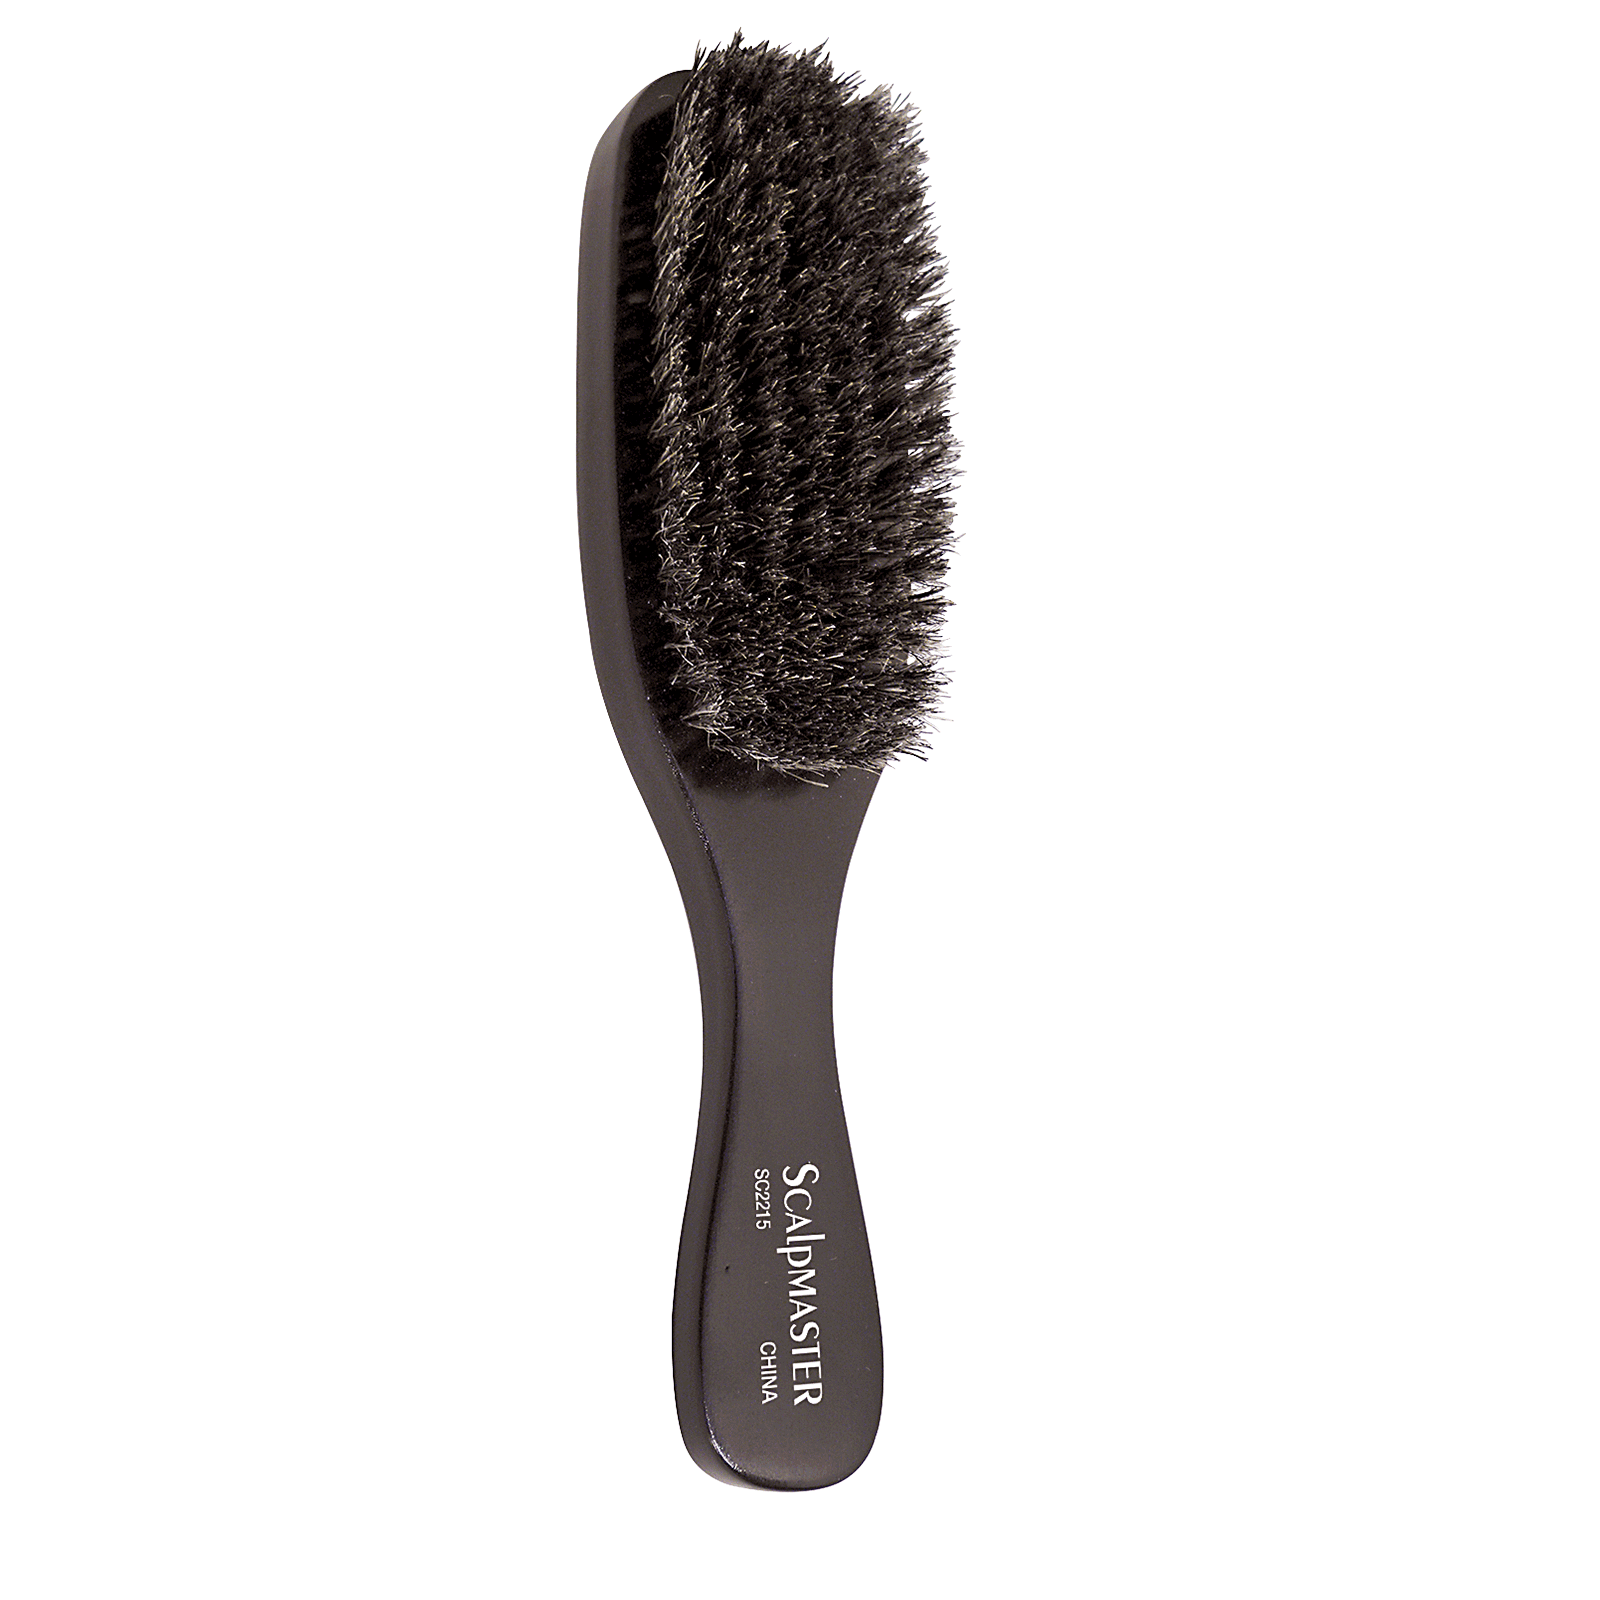 Scalpmasters 7 Row Wave Brush